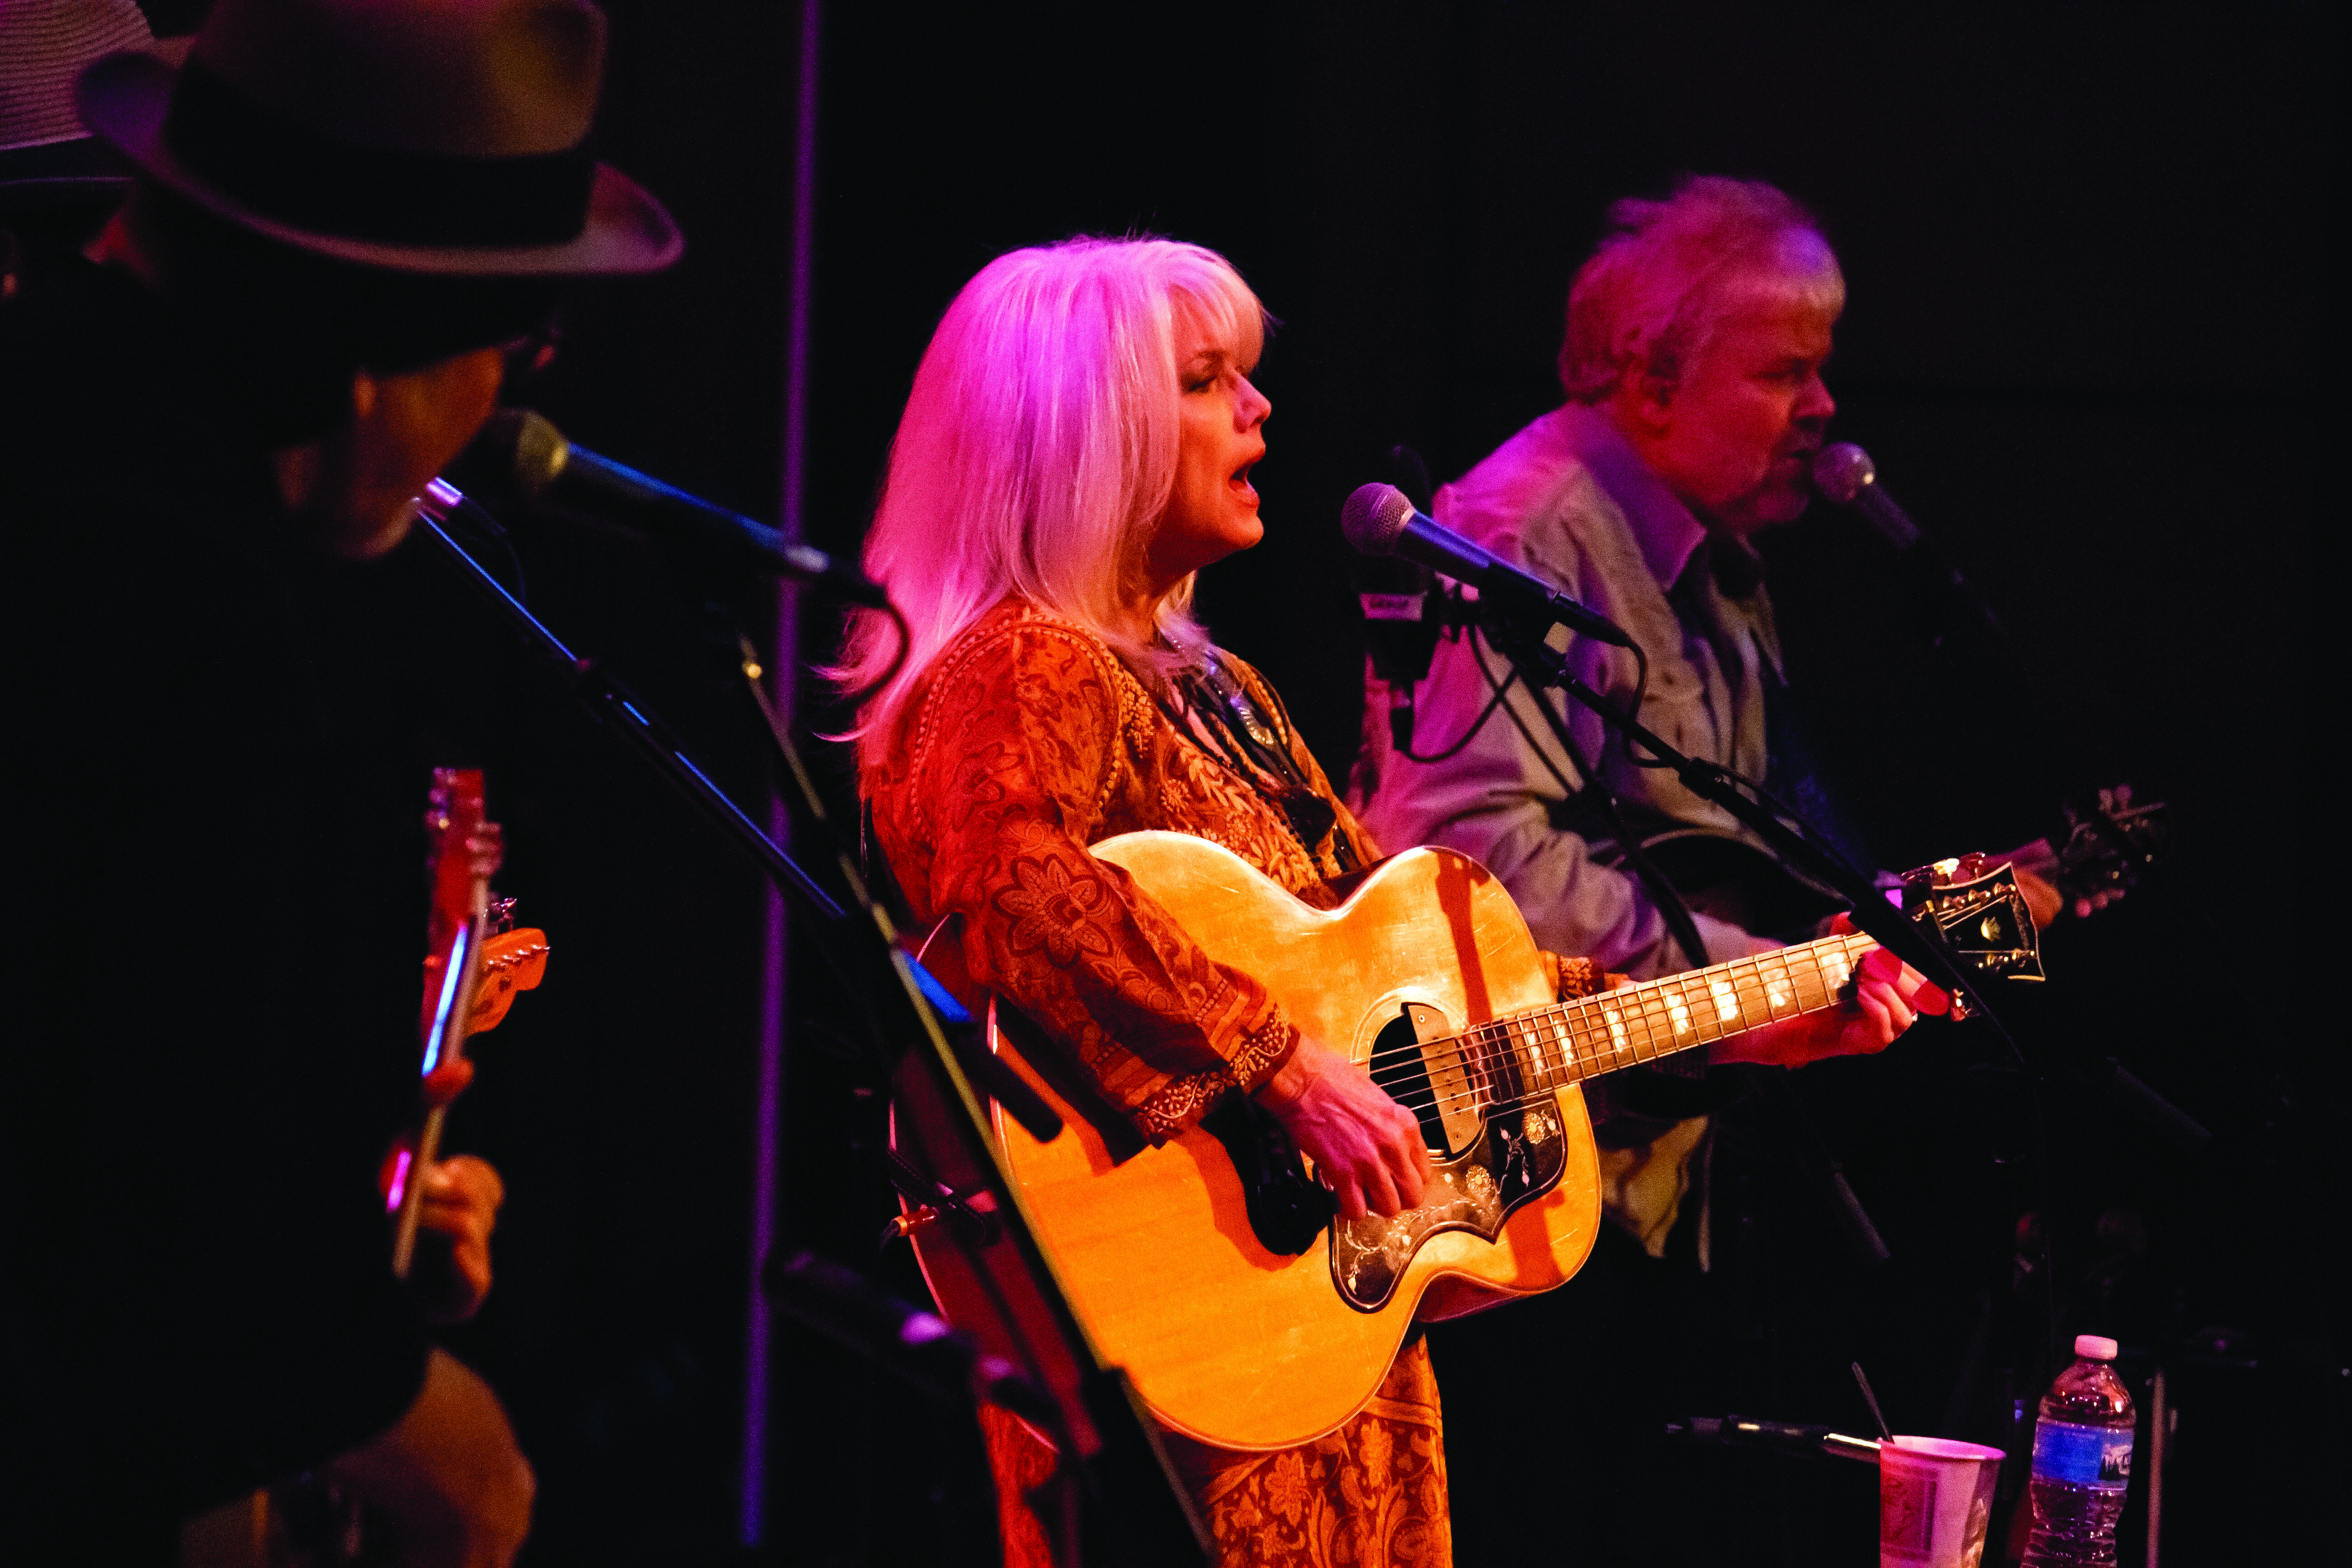 Emmylou Harris plays guitar and sings into a microphone in Sauder Concert Hall